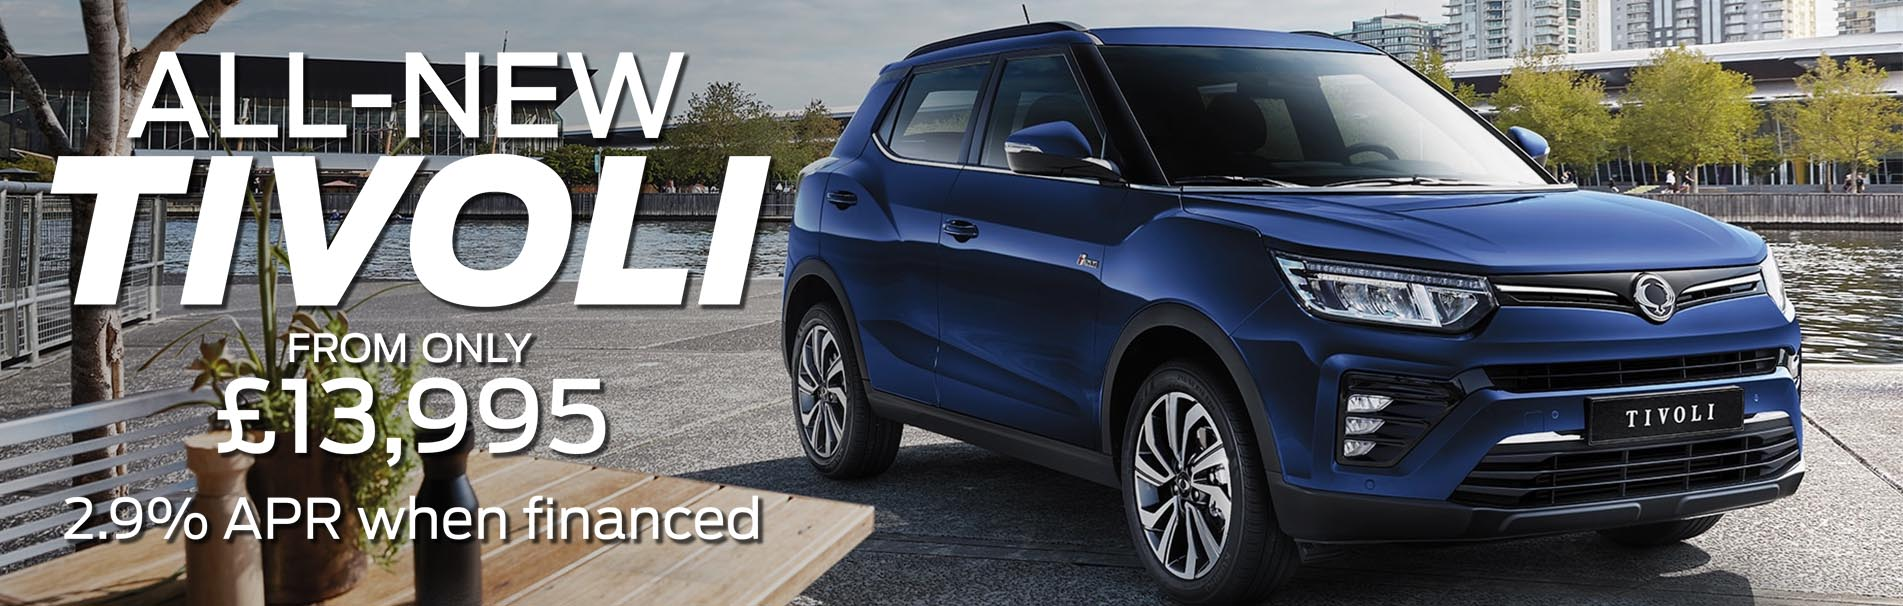 new-ssangyong-tivoli-only-13995-sli